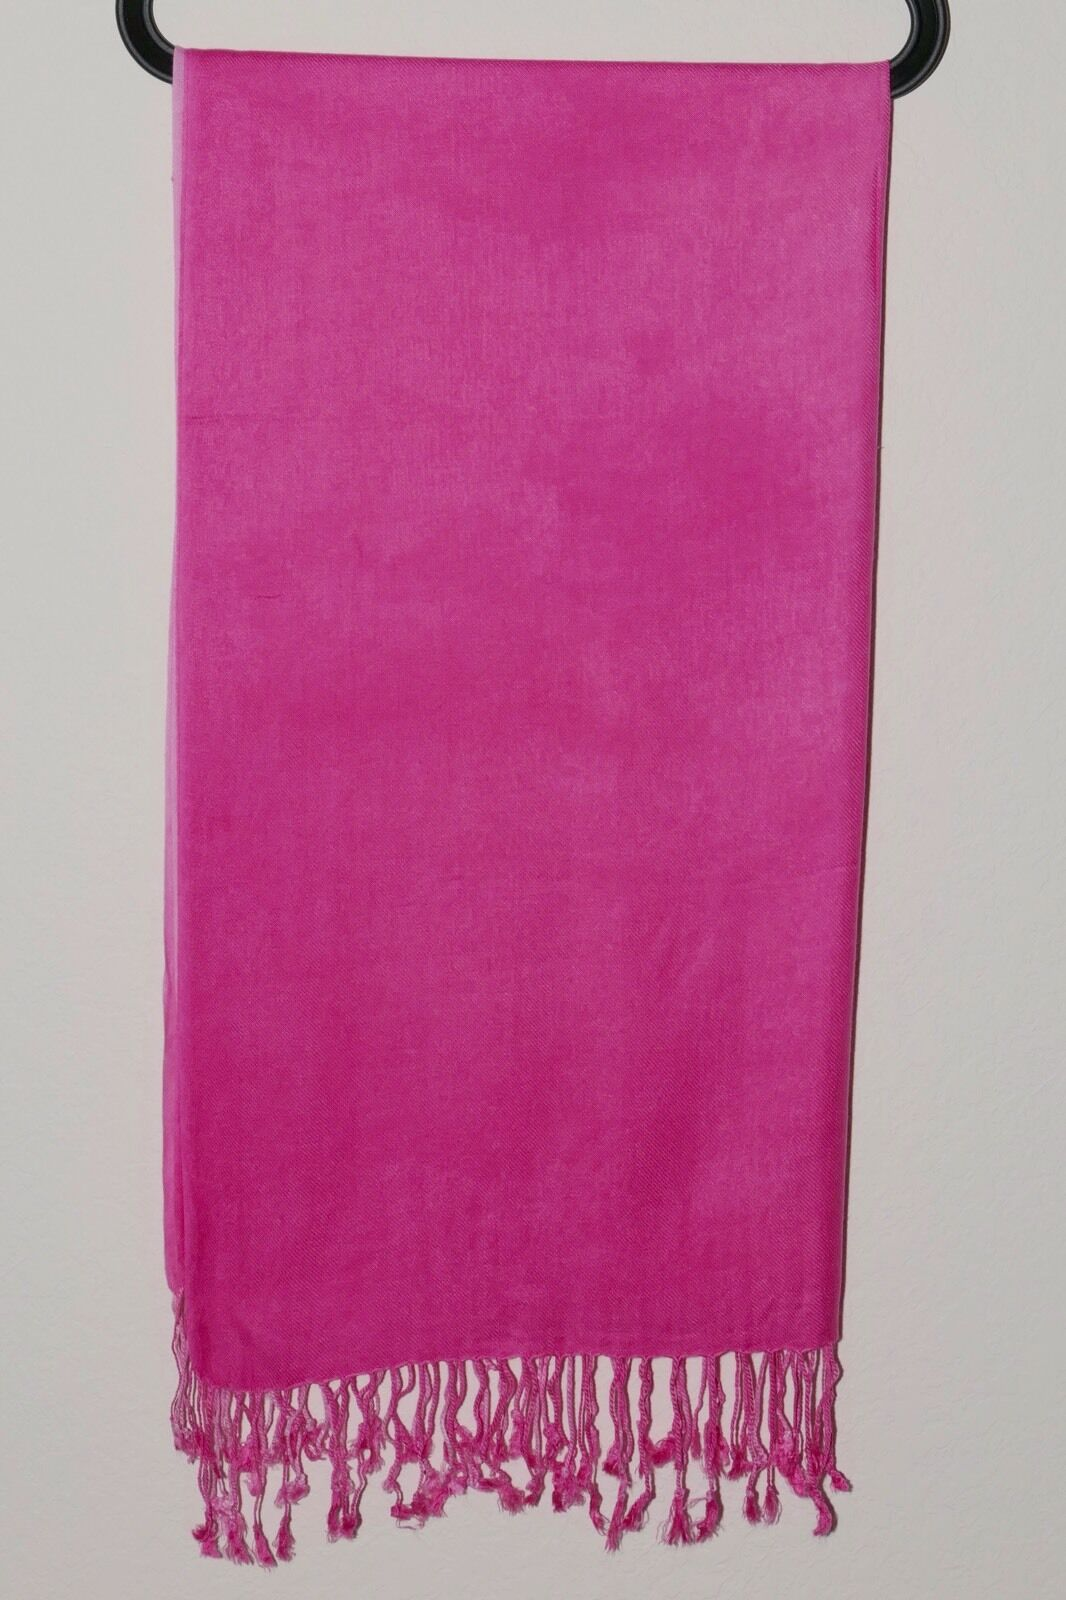 Scarf/Shawl in, Ombre Design (Two Toned ), 70